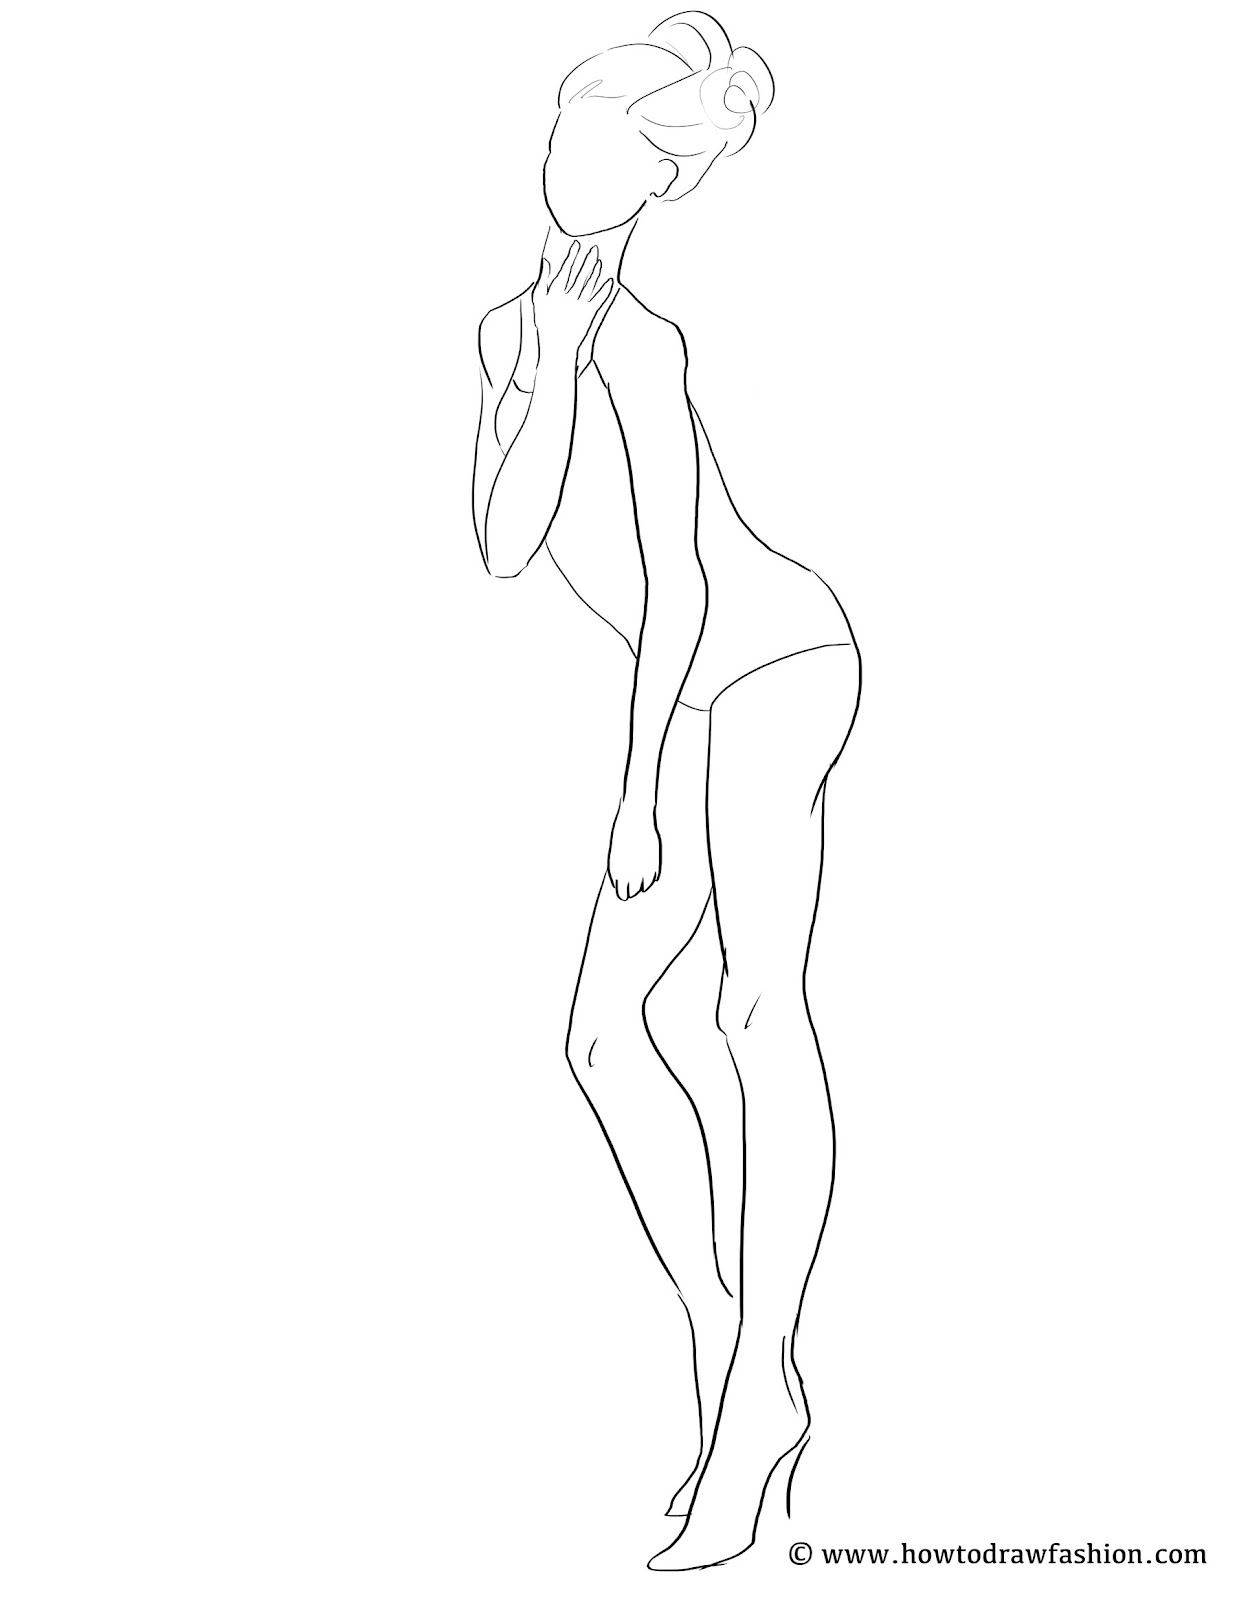 Blank Fashion Body Templates Sketch Templates